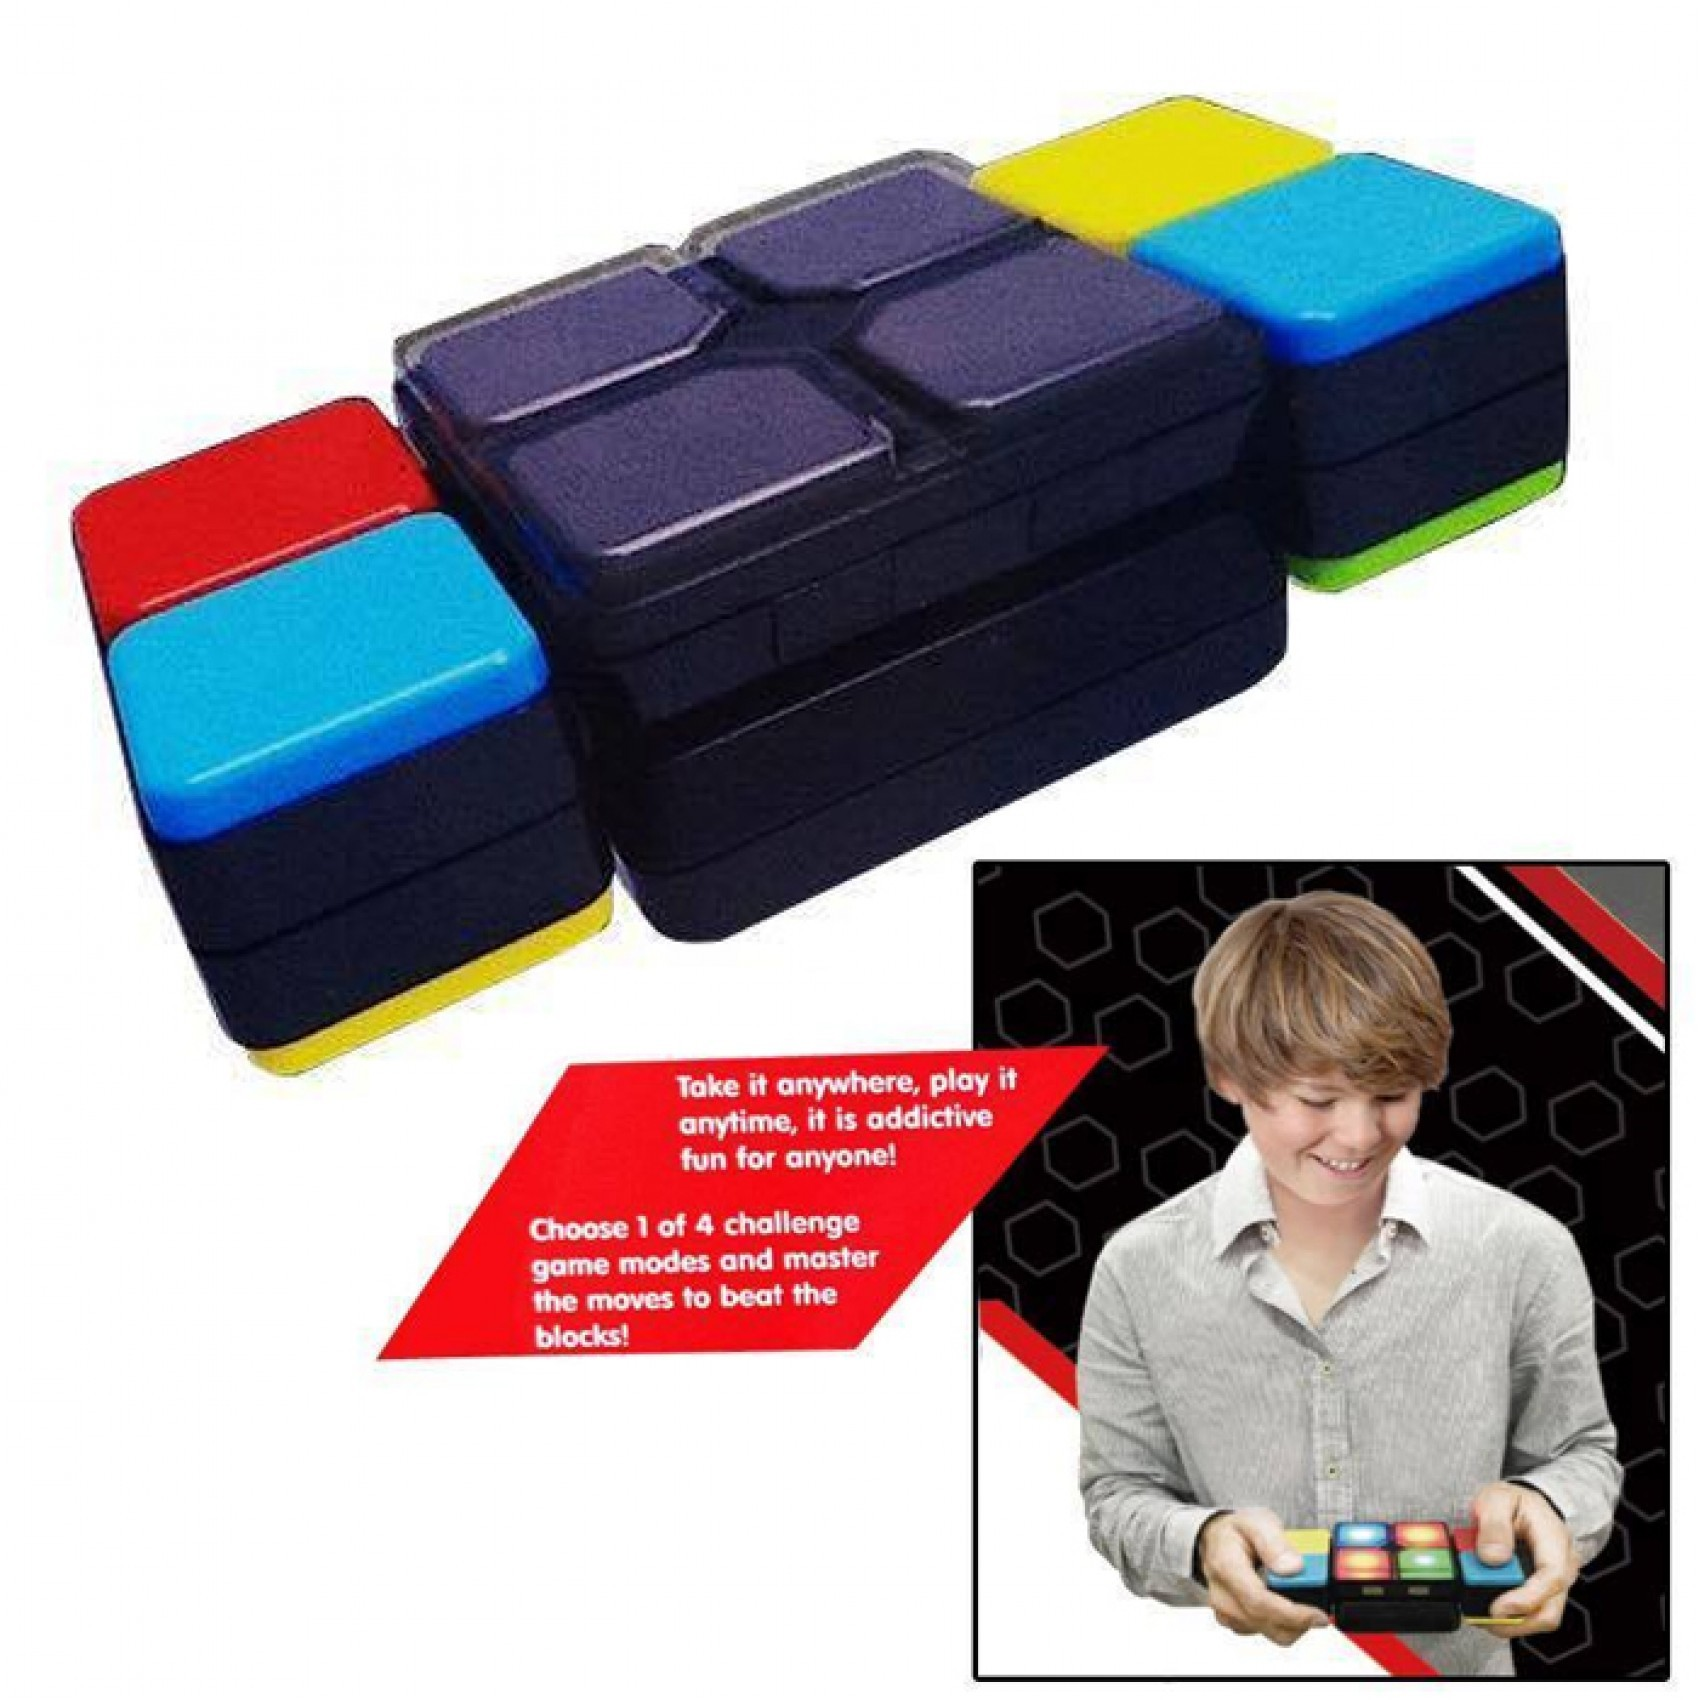 Brainnovative Digital Game Magic Cube Toy with 4 Game Modes - Black